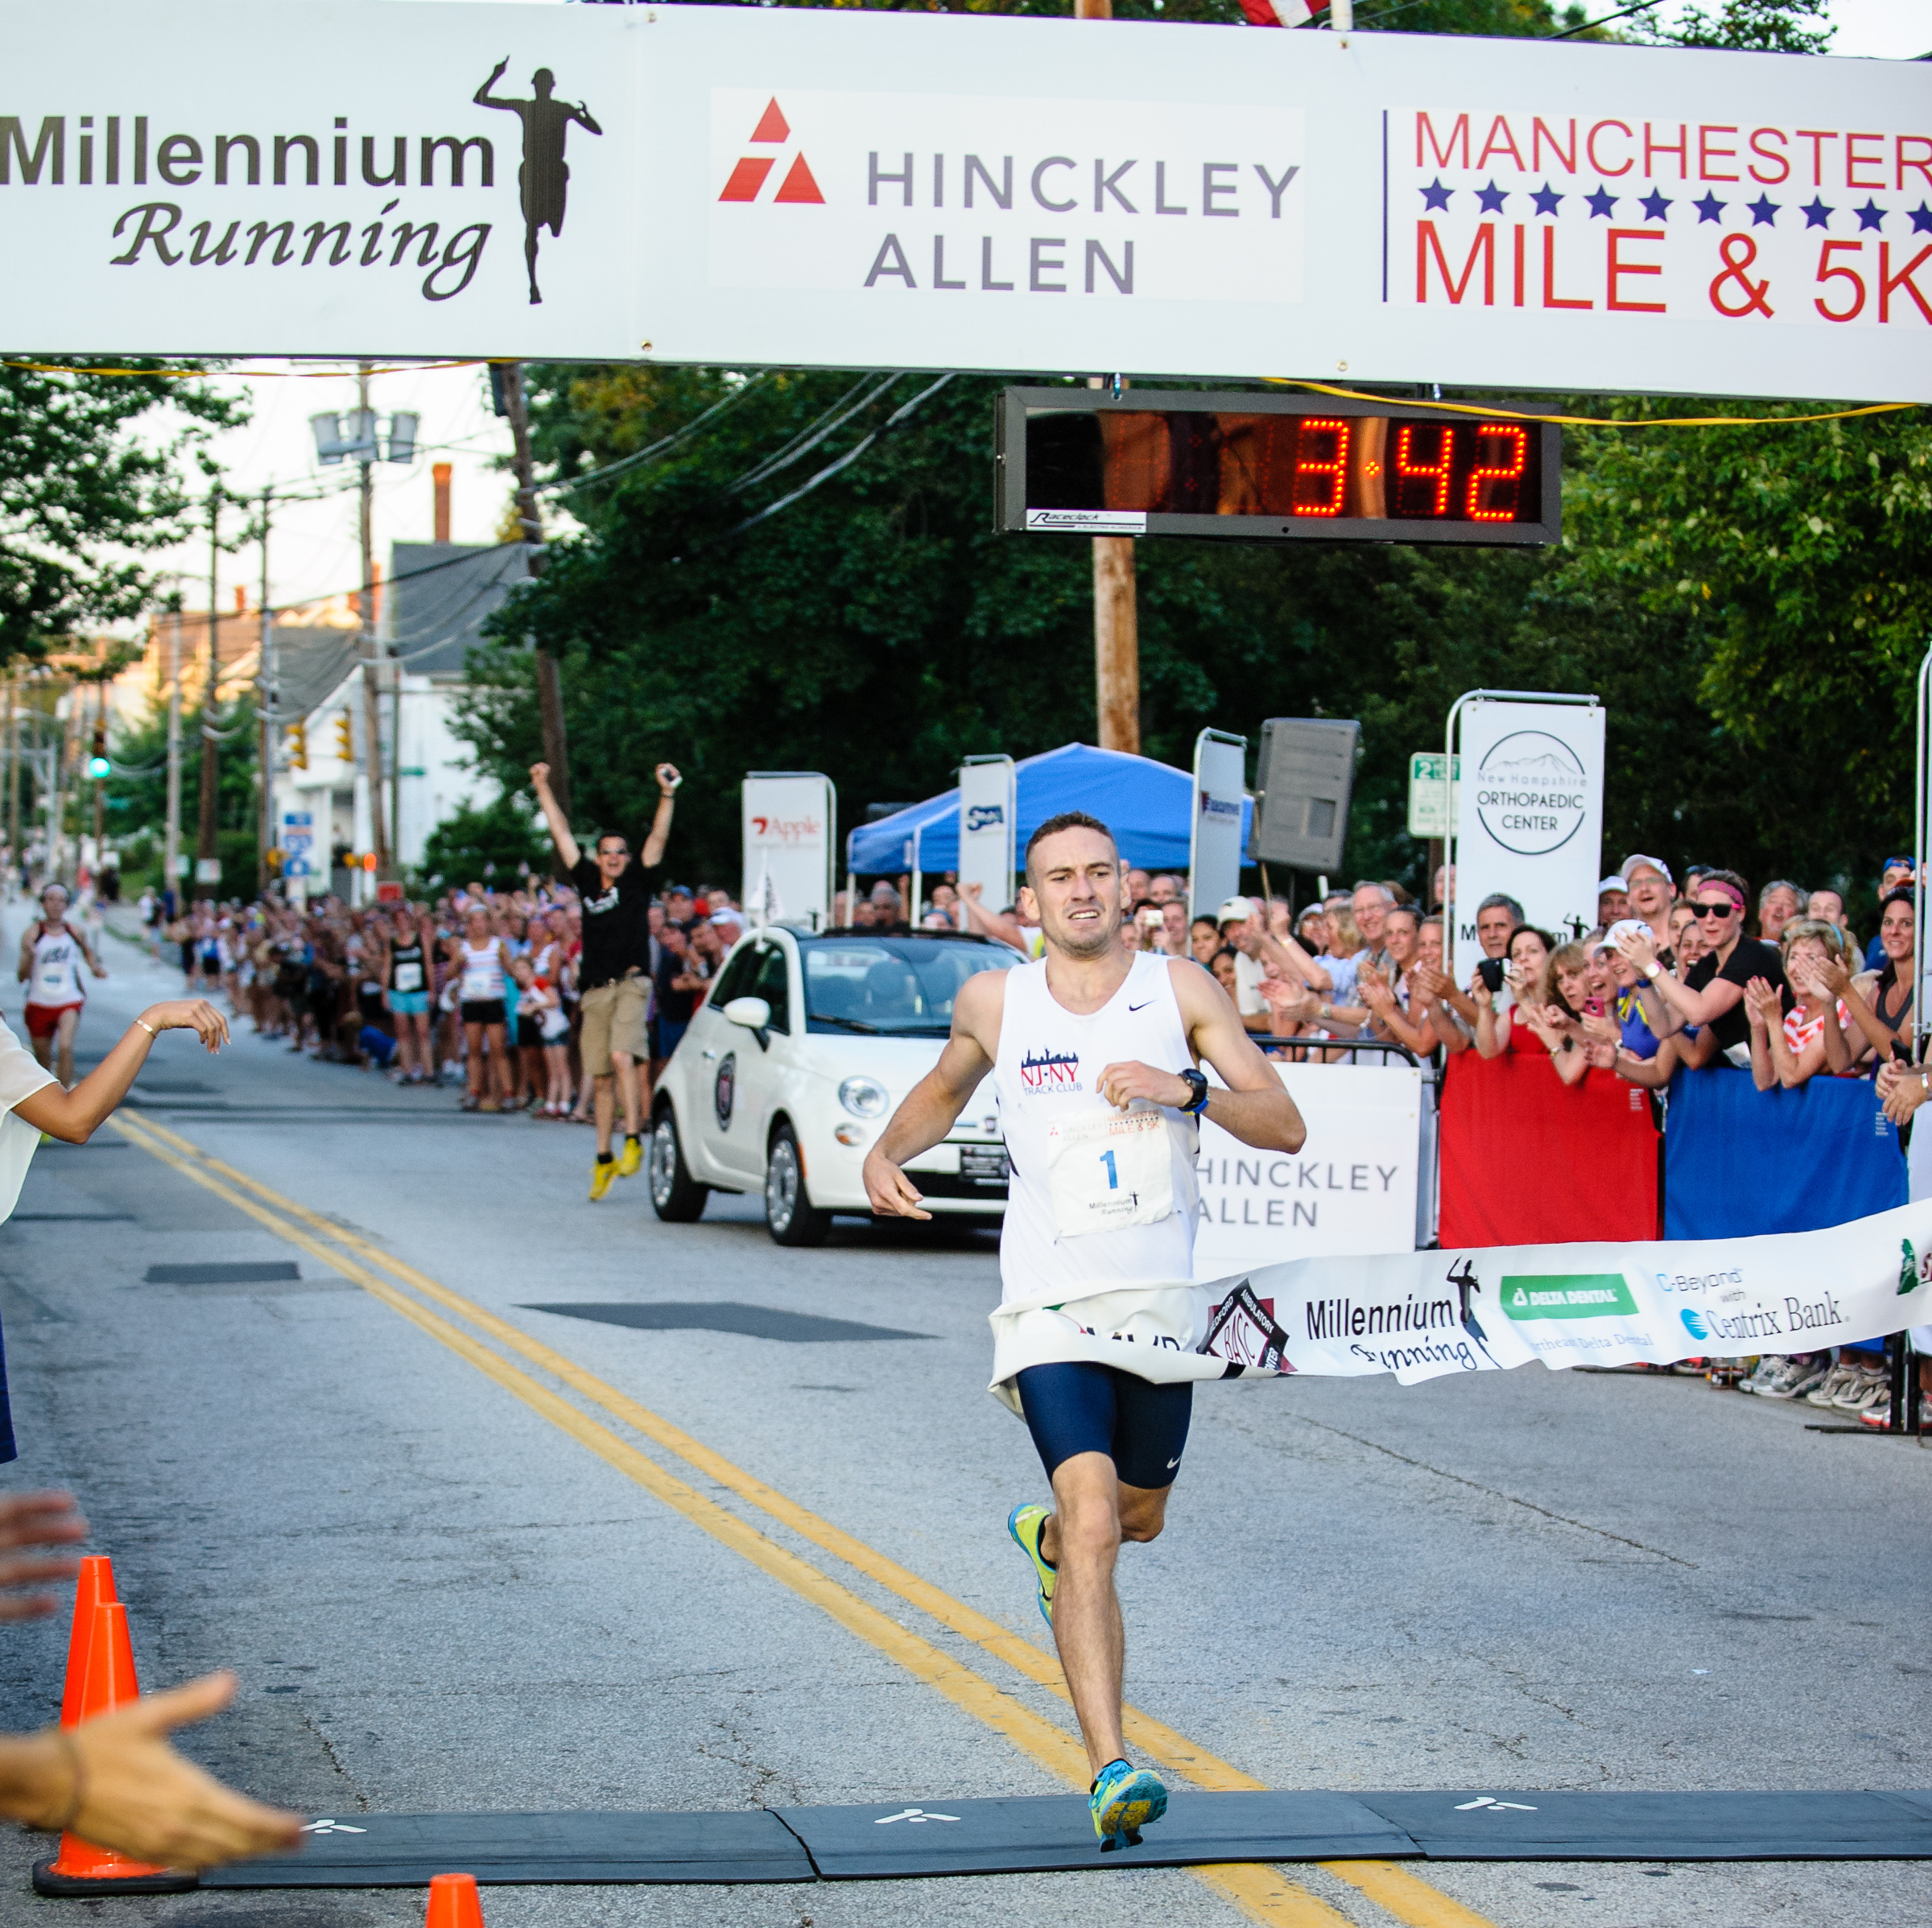 PHOTOS: 2013 Hinckley Allen Manchester Mile & 5K Pictures